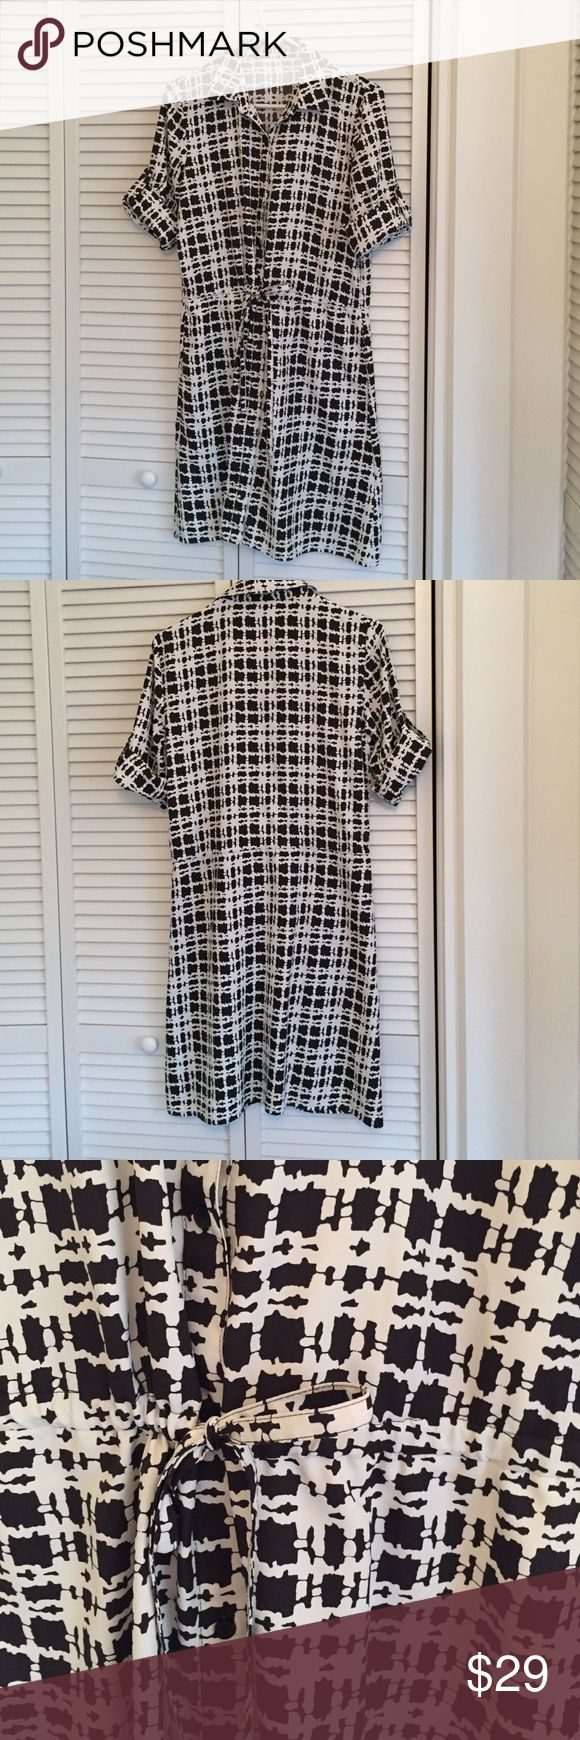 Calvin Klein drawstring shirtdress This shirtdress has a drawstring waist and roll up sleeves. Tags removed because they were scratchy. Calvin Klein Dresses Midi